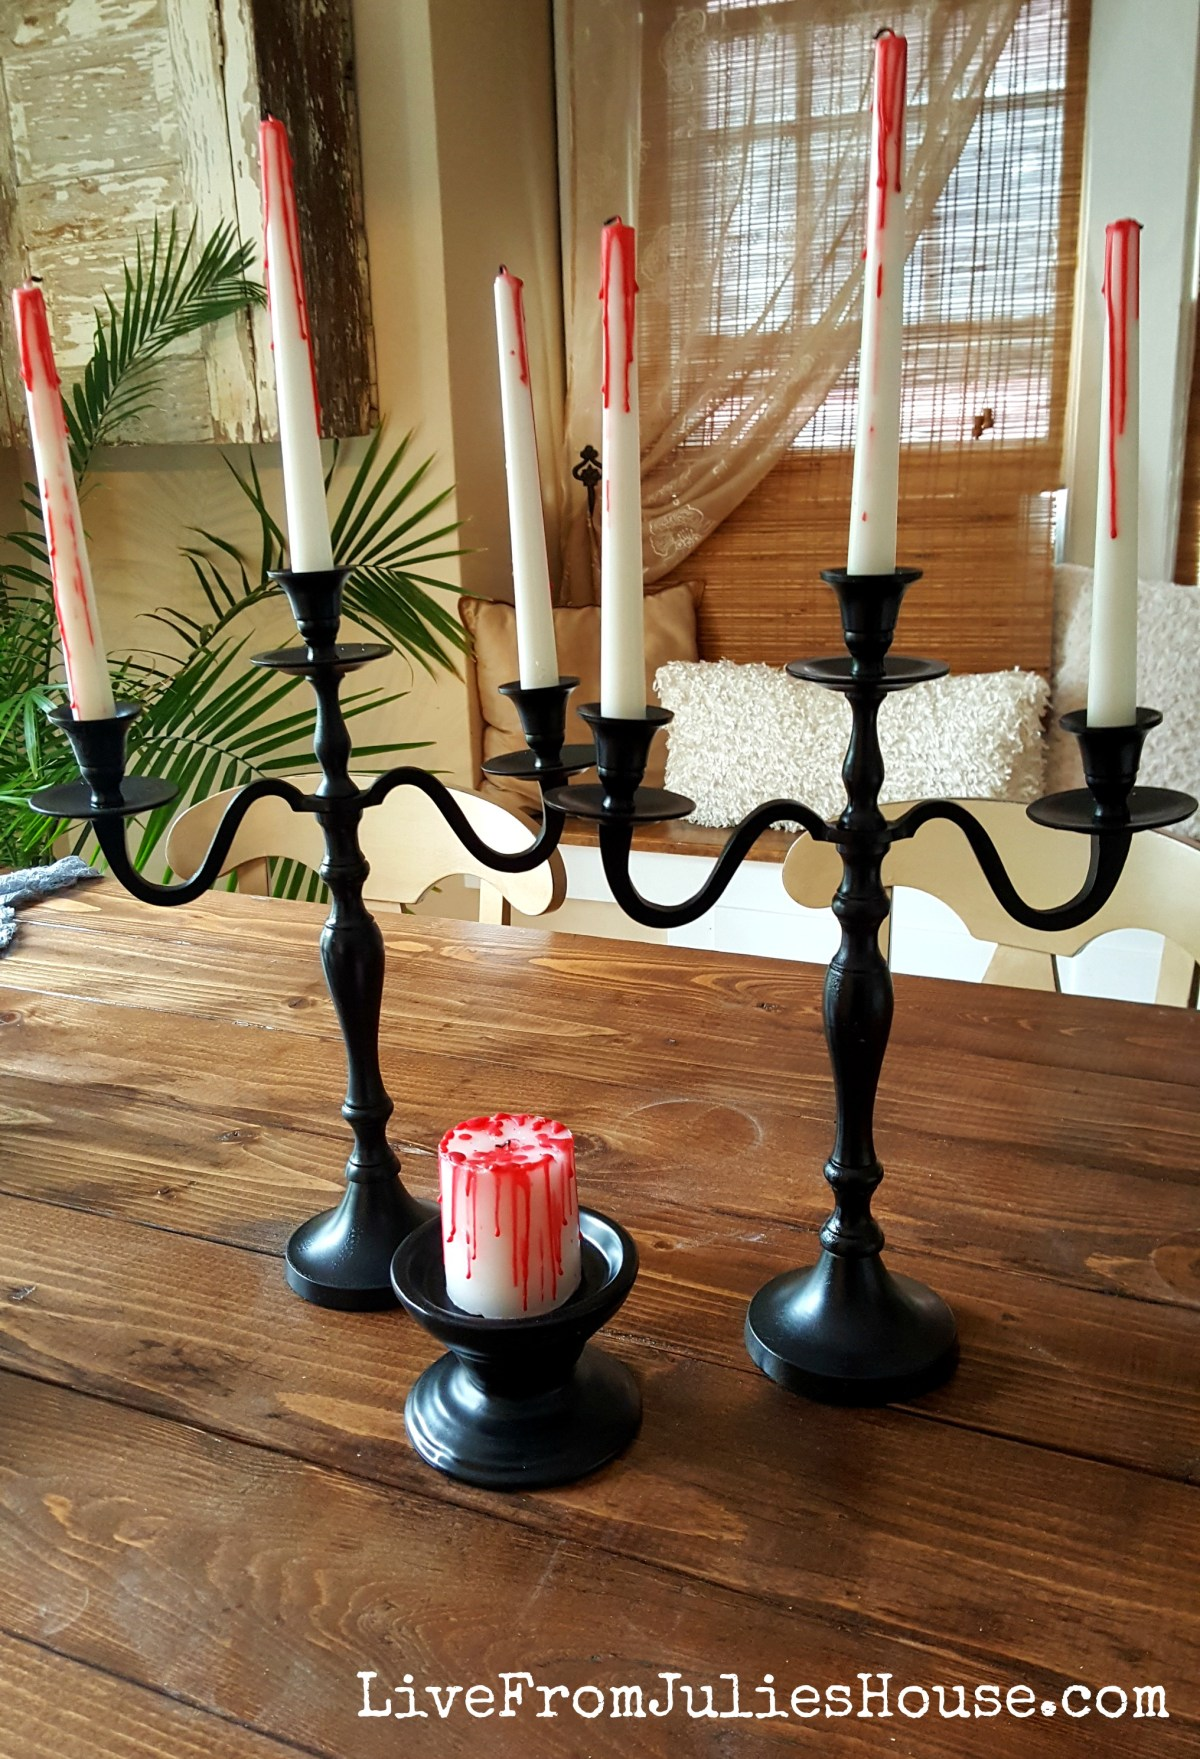 Halloween Decor on the Cheap: Bloody Candles - Want a Halloween decor project that gives you a lot of spooky bang for very little buck? Bloody candles come together in minutes.